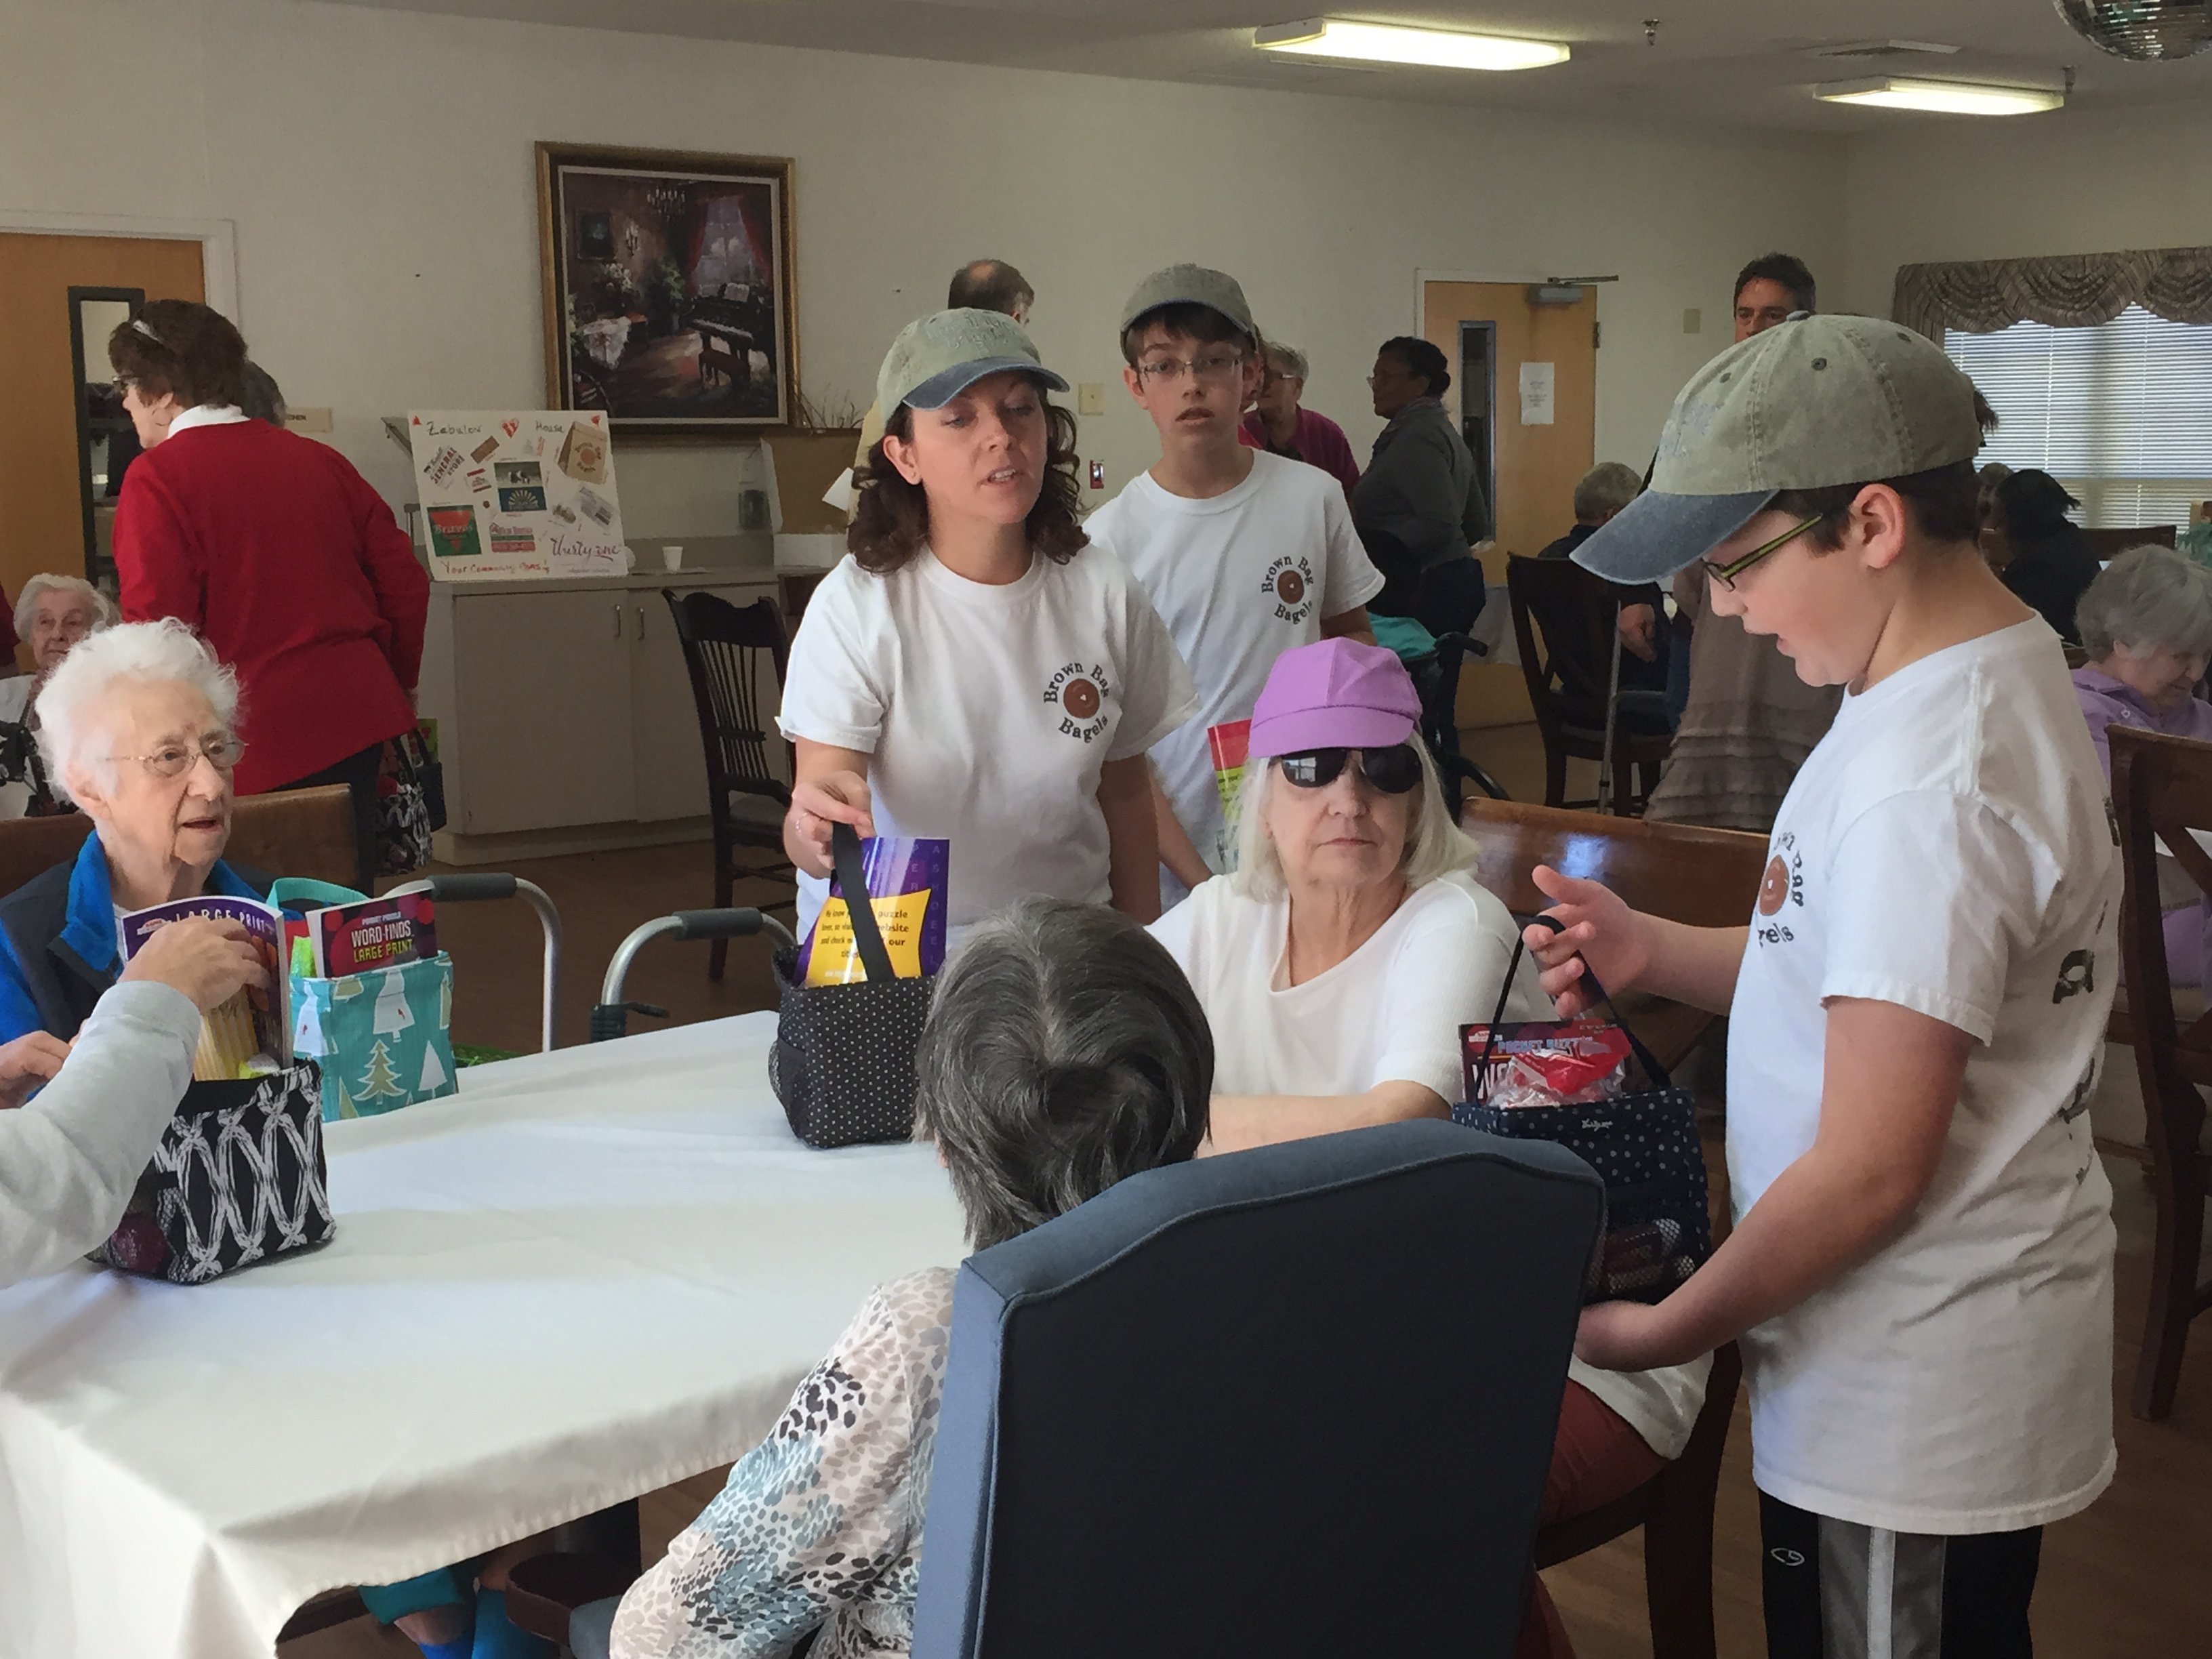 The Brown Bag Bagels family, volunteering recently at a local nursing home. Photo: Kay Whatley.